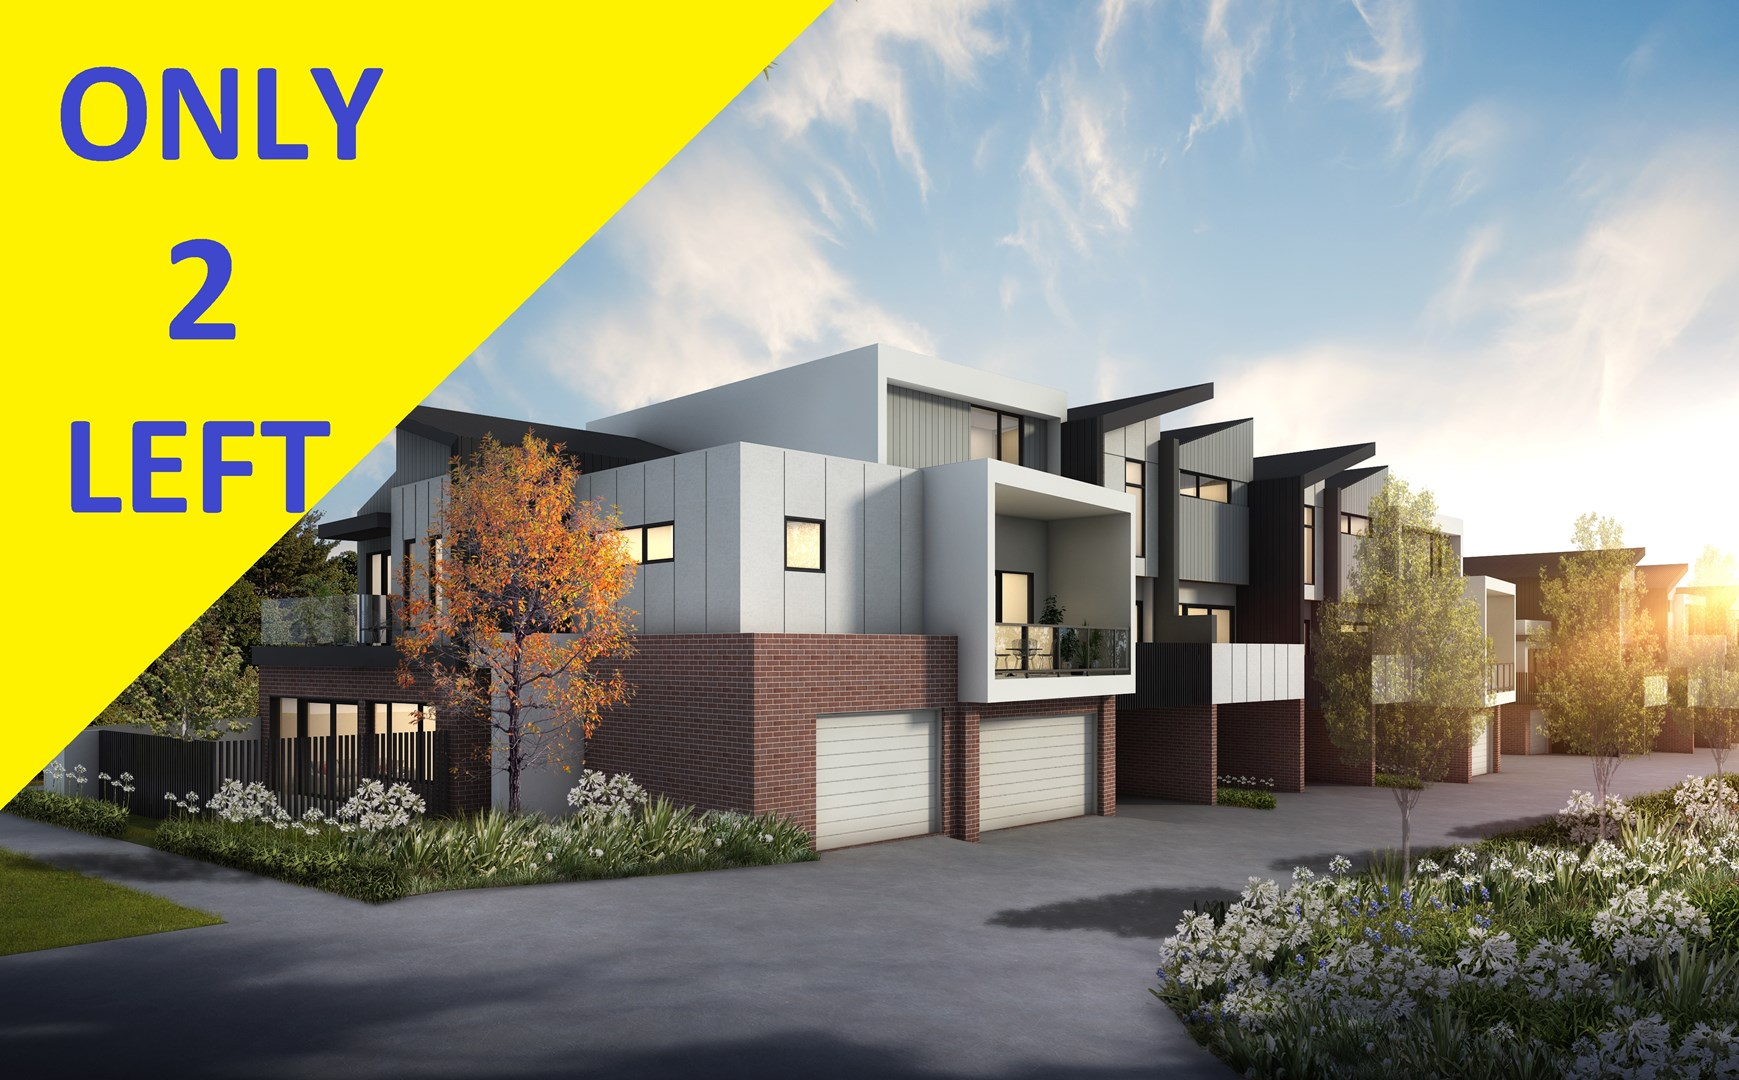 Apartments Off The Plan Melbourne Extraordinary living